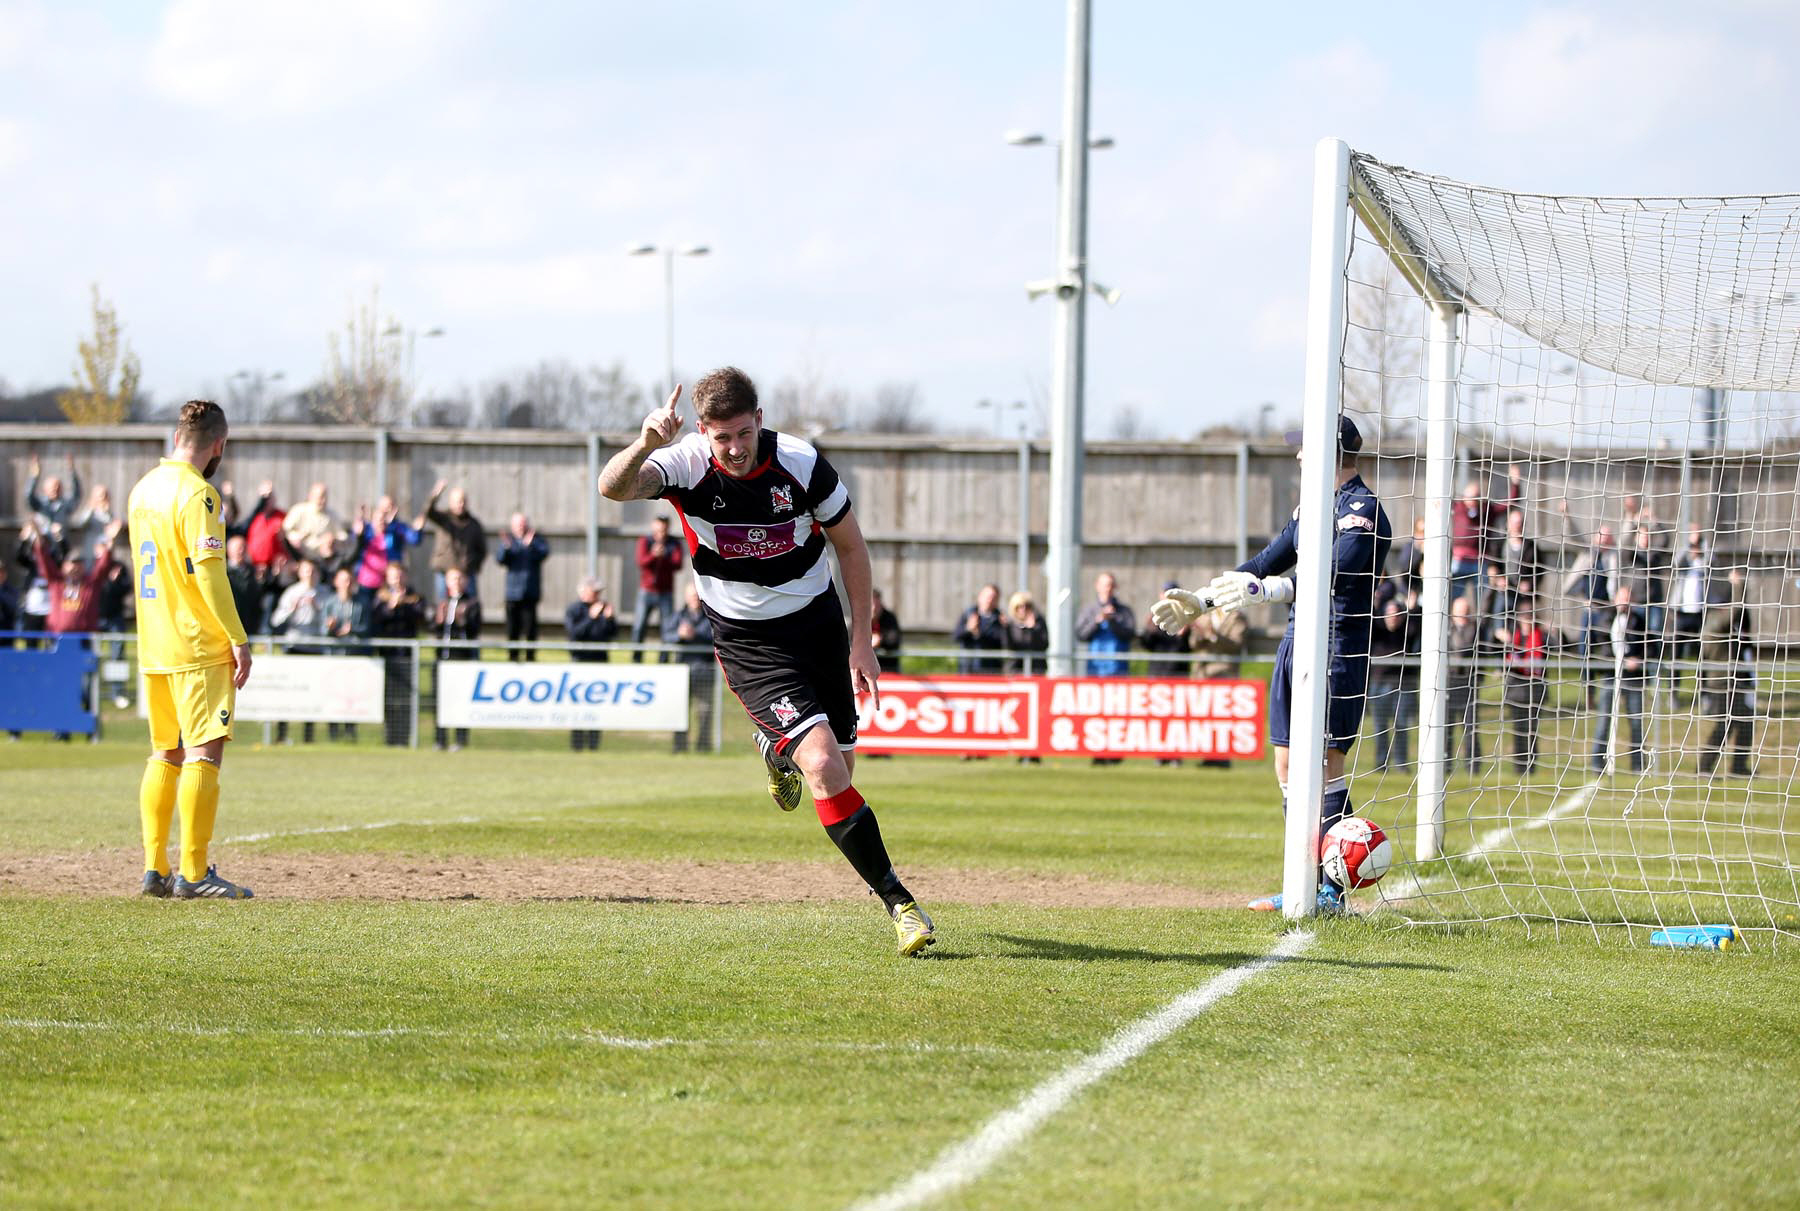 The match will take place at Darlington's temporary home ground, Heritage Park, in Bishop Auckland